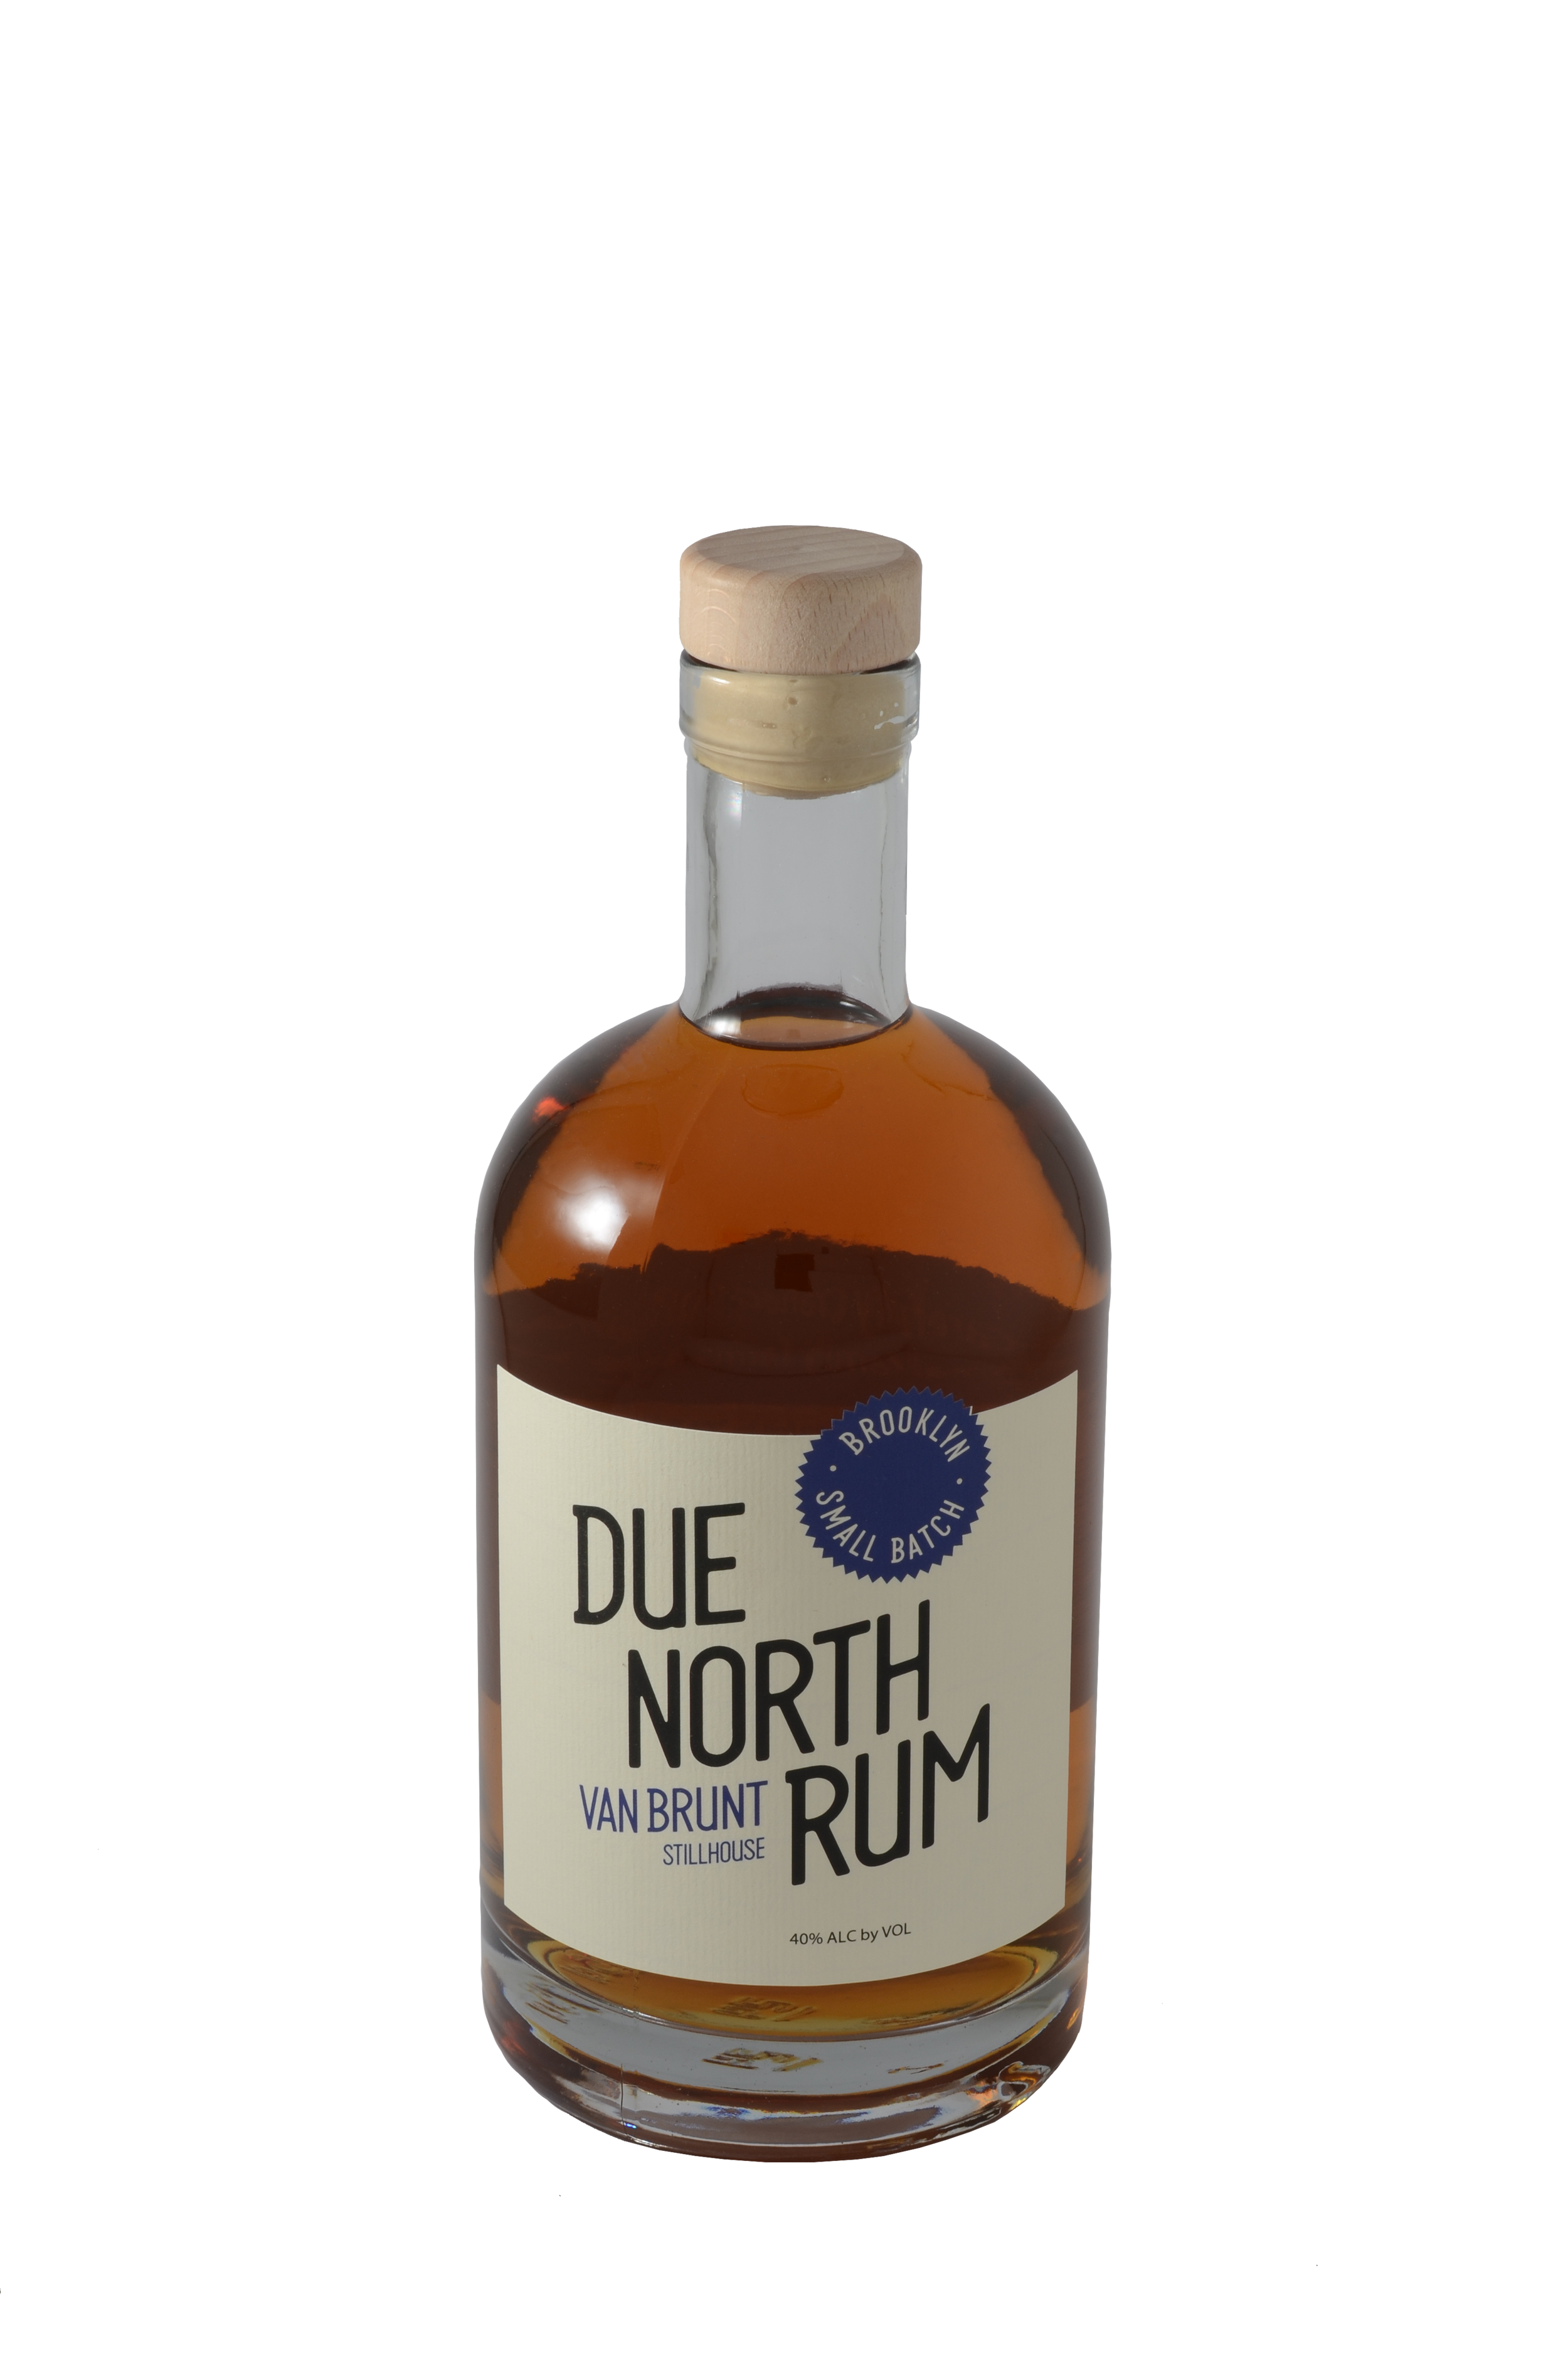 VBS  Due North Rum  is an amber rum distilled from organic, unprocessed Himalayan sugarcane. Notes of vanilla and molasses recall grandmother's cookies, while the fresh charred barrels make this a whiskey lovers' rum.